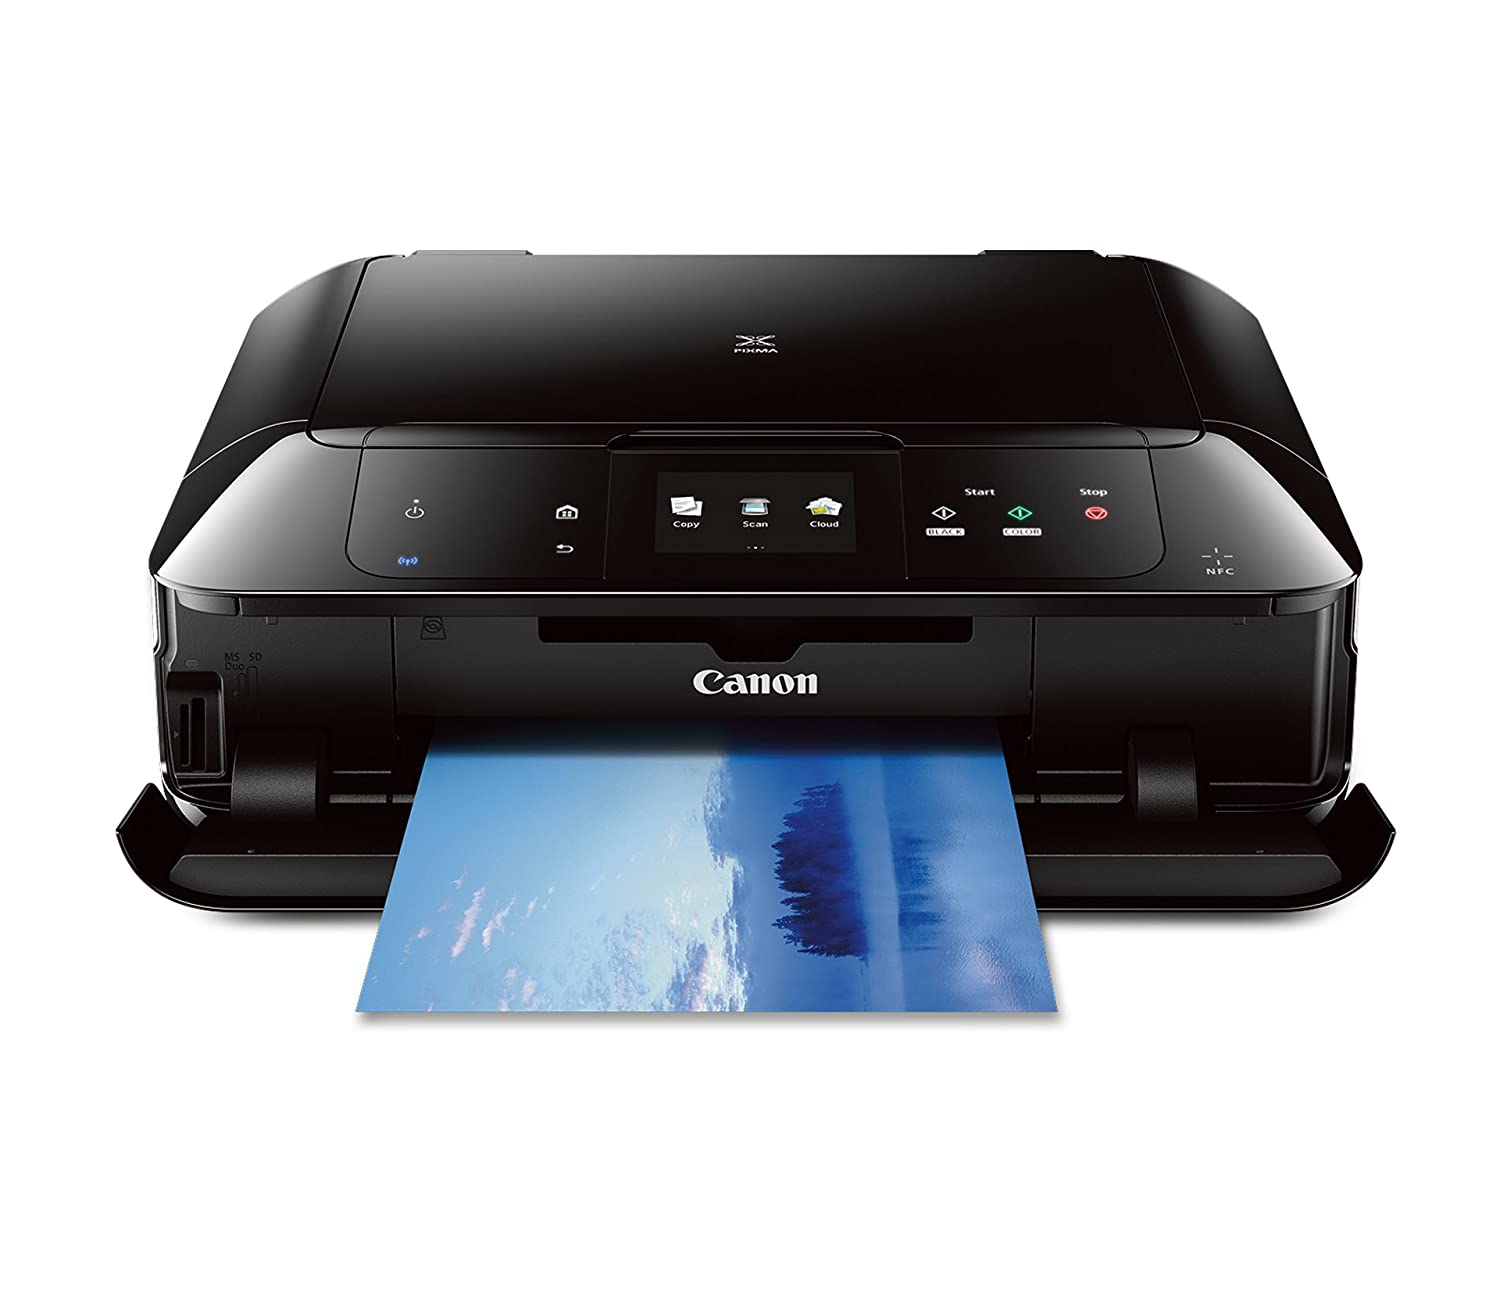 Amazon.com: CANON MG7520 Wireless Color Cloud Printer with Scanner ...